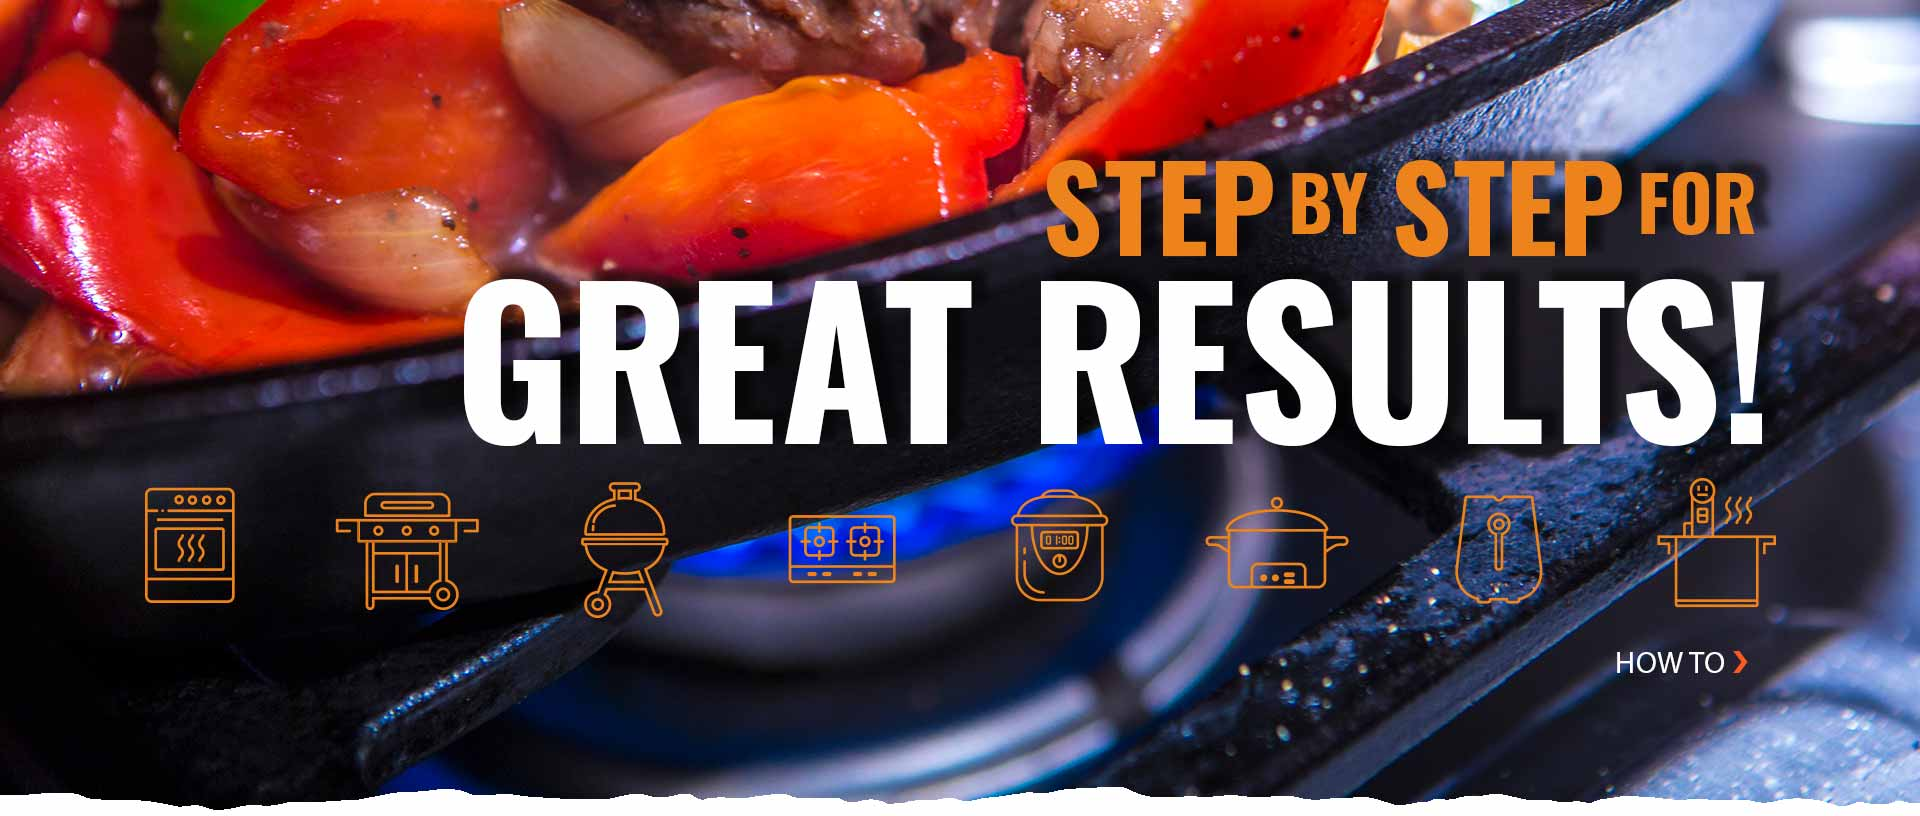 Step by Step for Great Results! How to Cook and Grill Our Products.